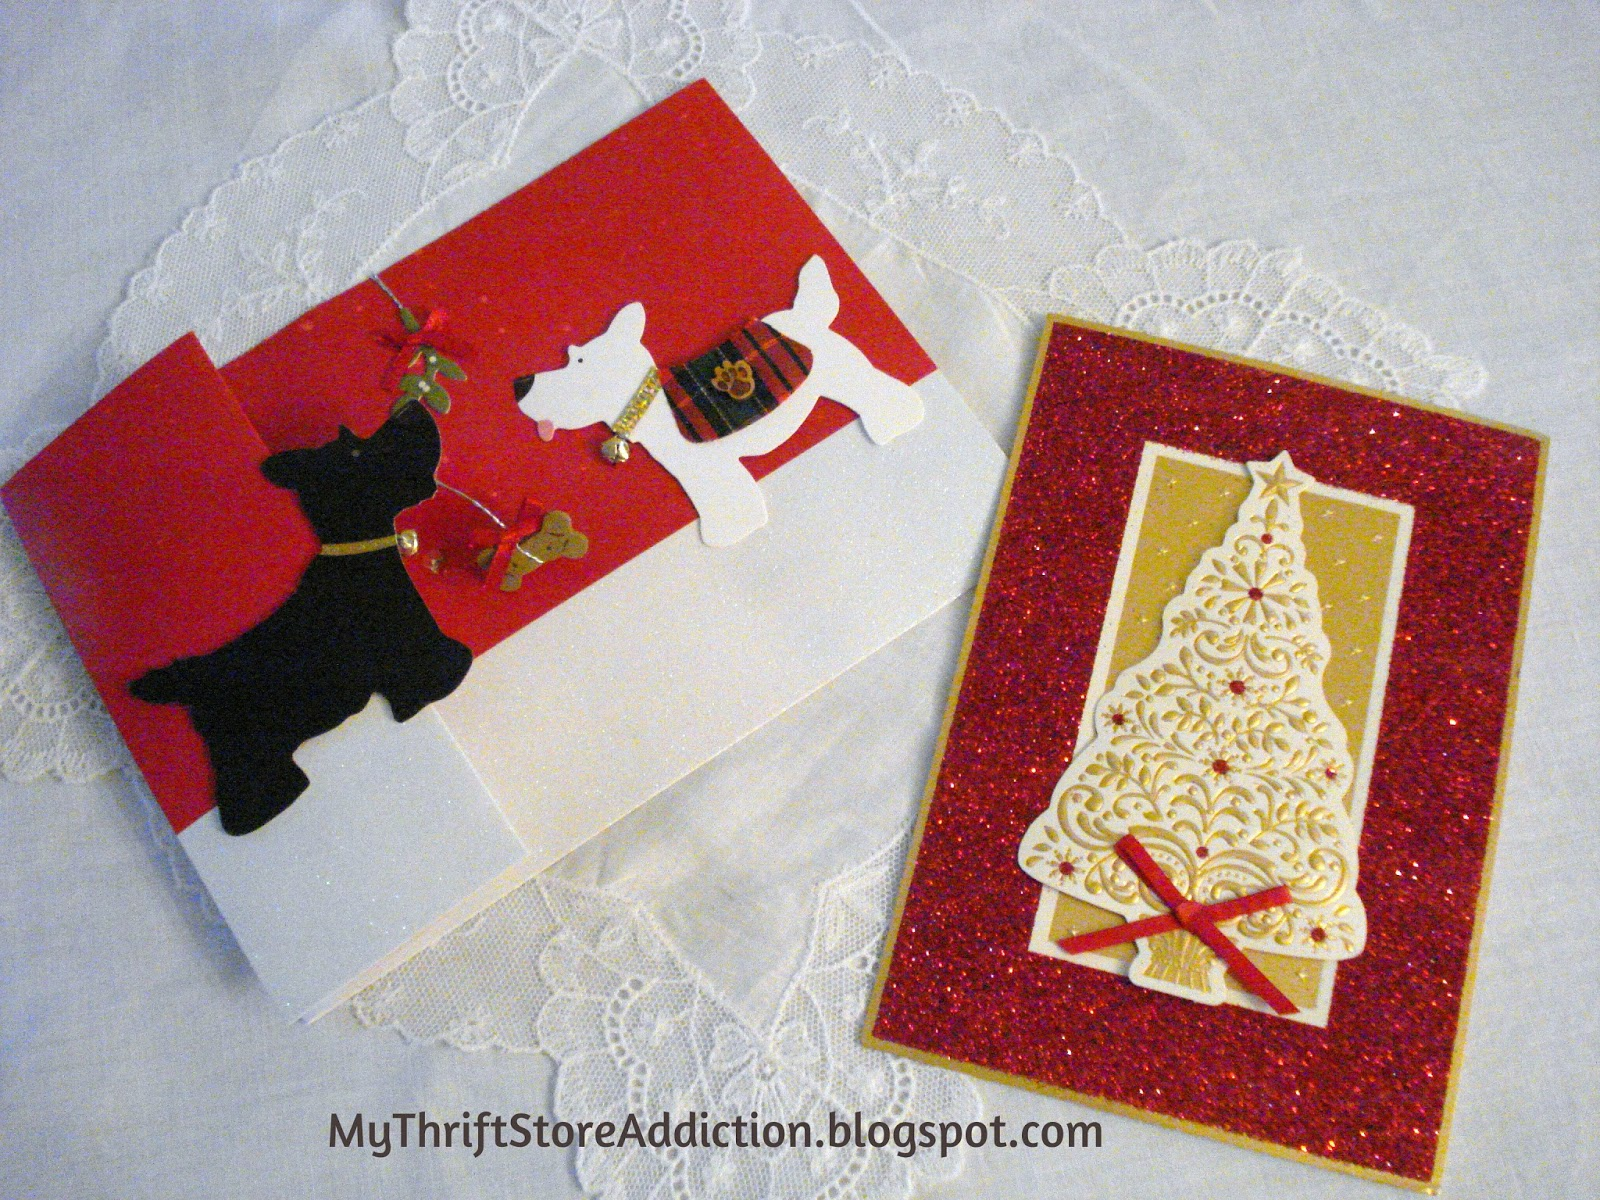 Repurpose Christmas cards as Valentines